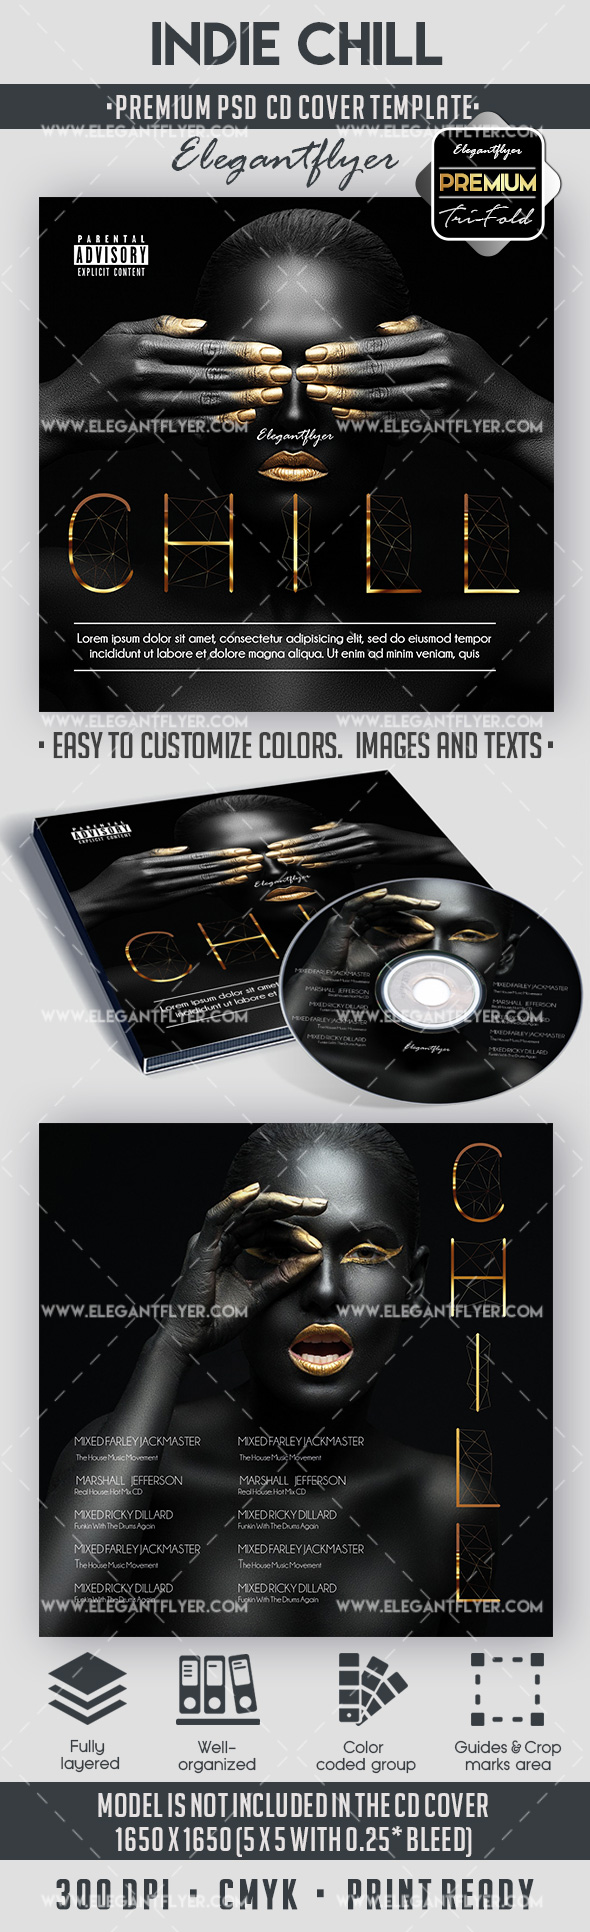 Indie Chill – Premium CD Cover PSD Template